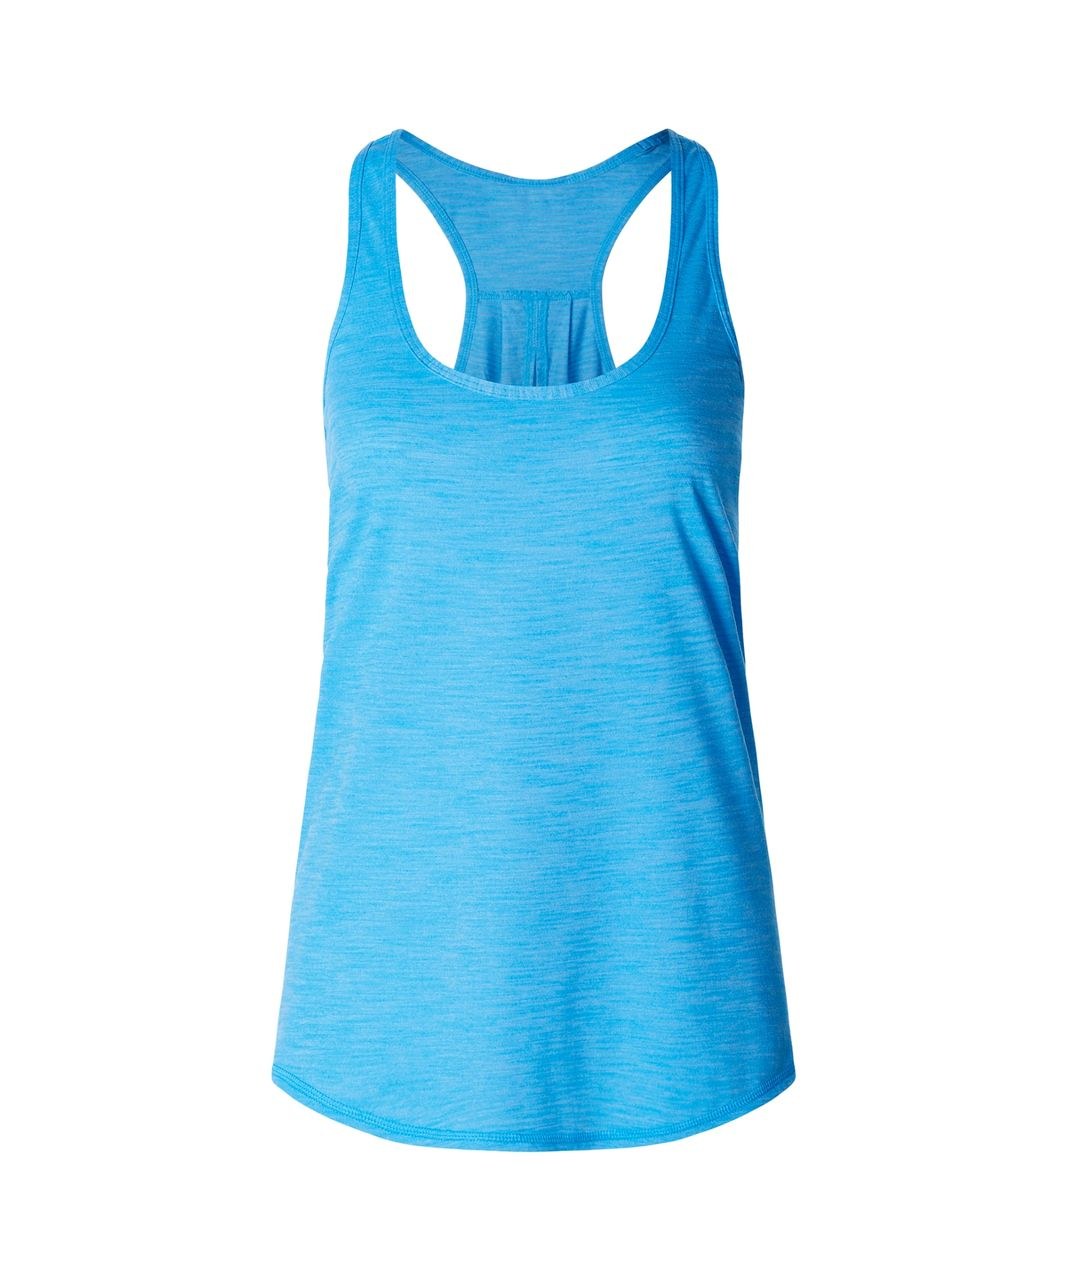 Lululemon Salute the Sun Singlet II - Heathered Kayak Blue